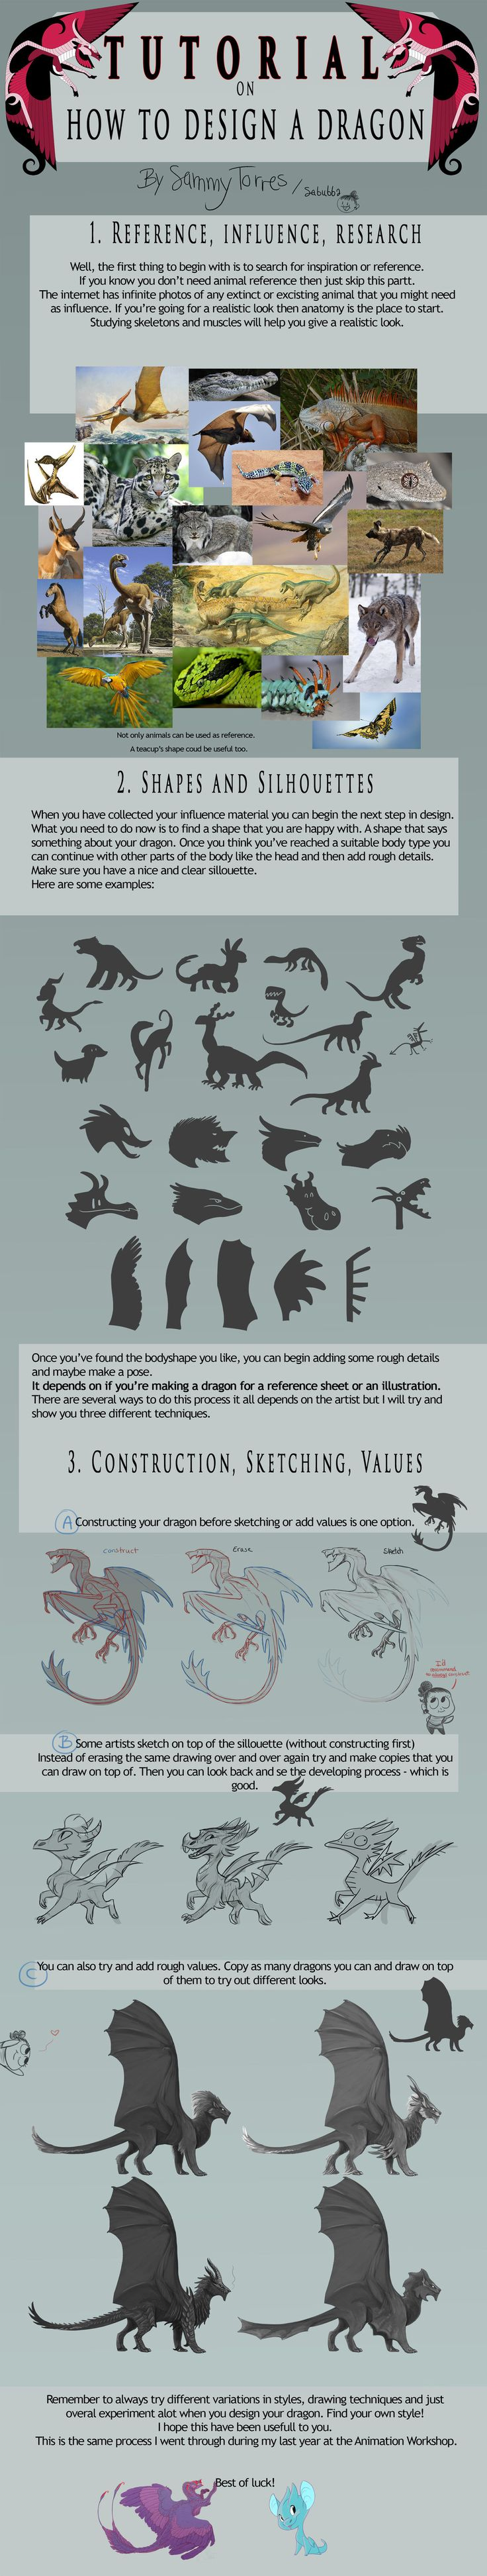 TUTORIAL: How to Design a Dragon by SammyTorres.deviantart.com on @deviantART